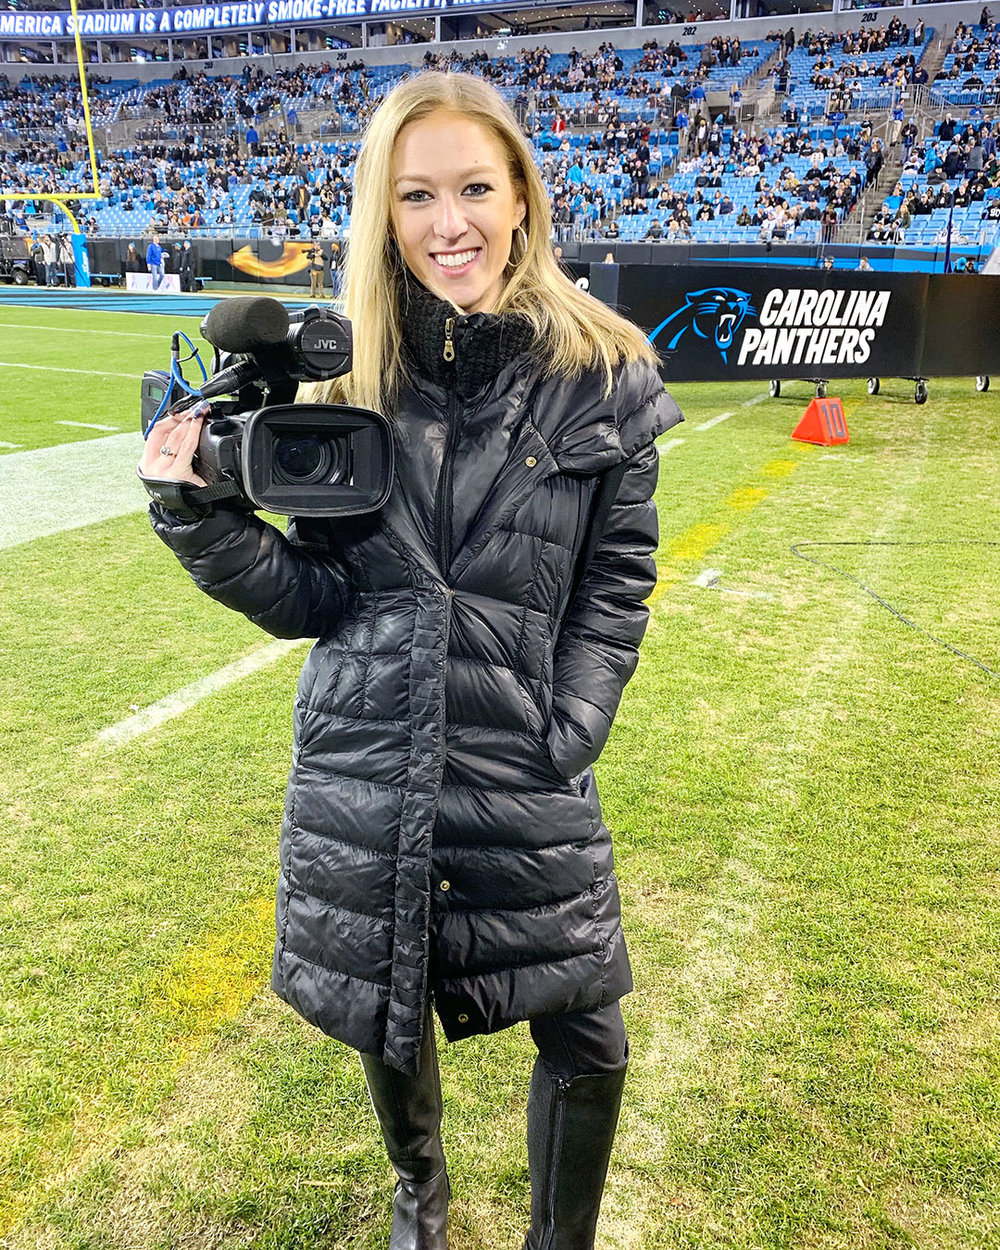 Ariel Epstein poses for a photo before a Carolina Panthers game.